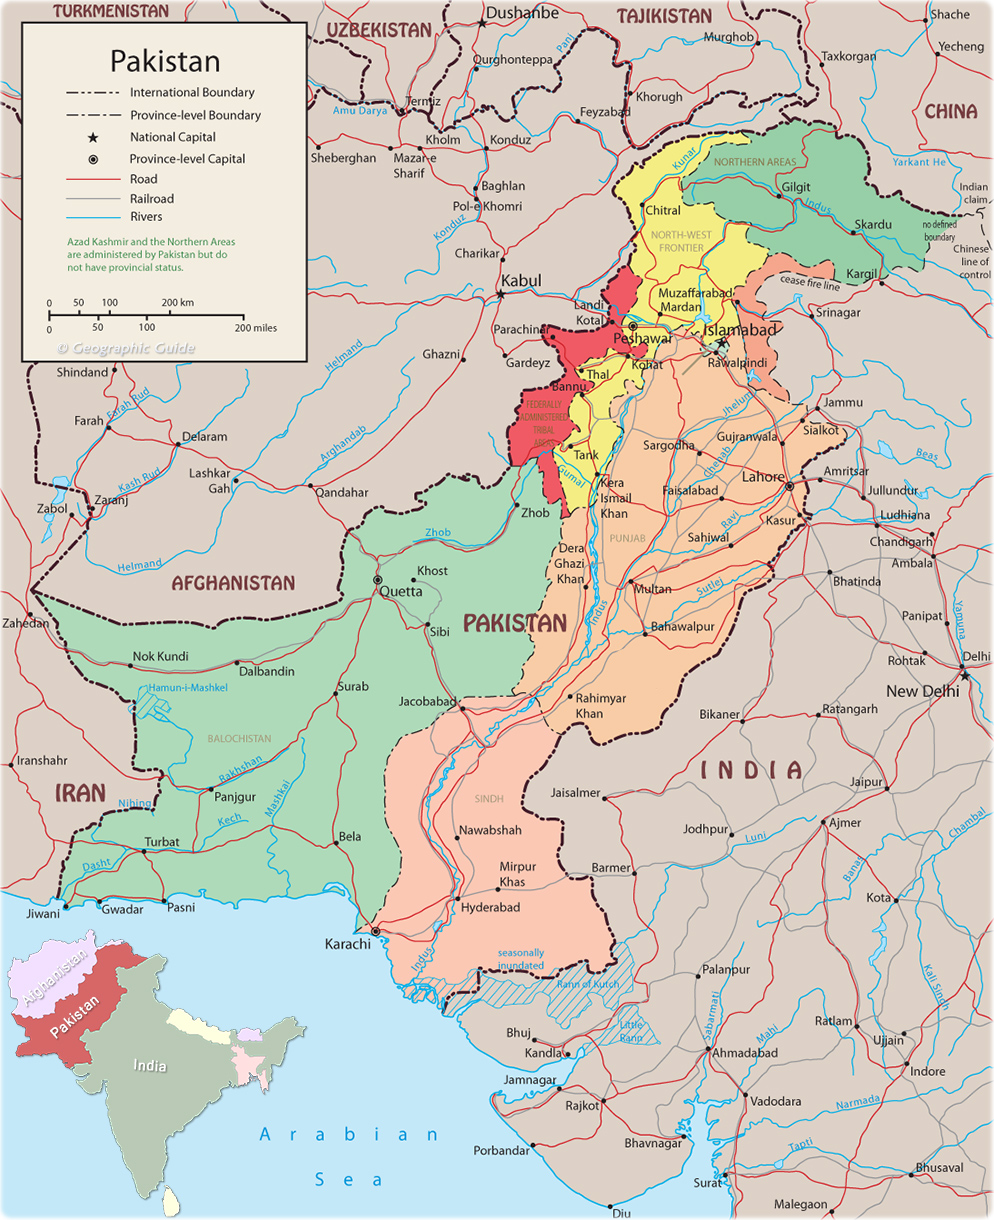 Islamabad Pakistan Map: Pakistan Kapital Karte